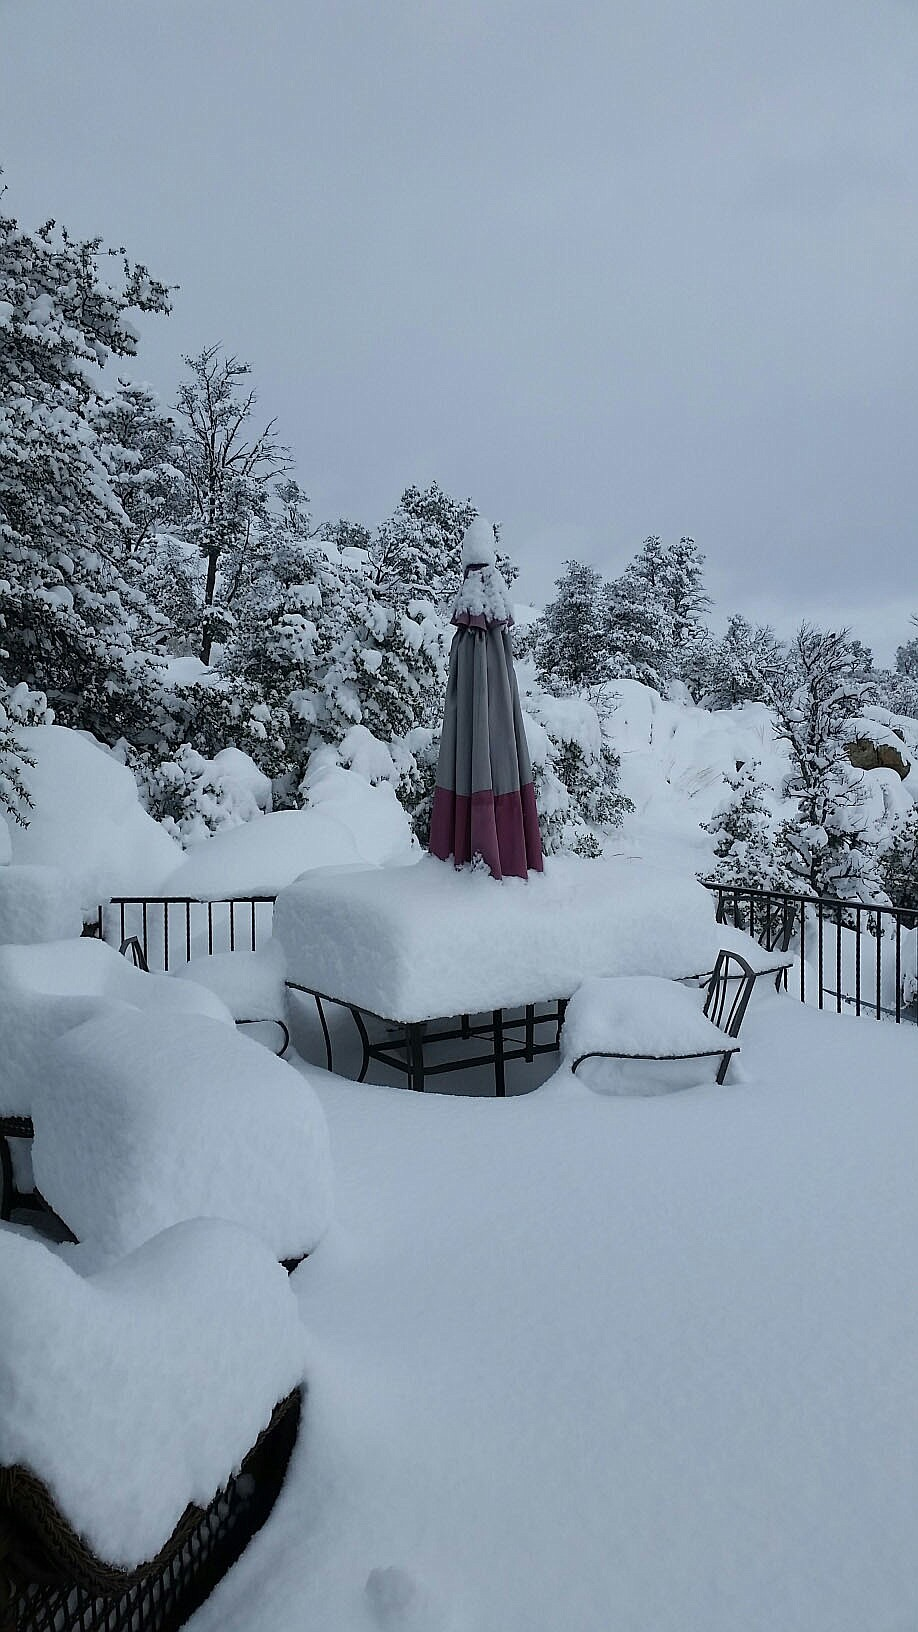 21 inches of snow on our deck this morning.